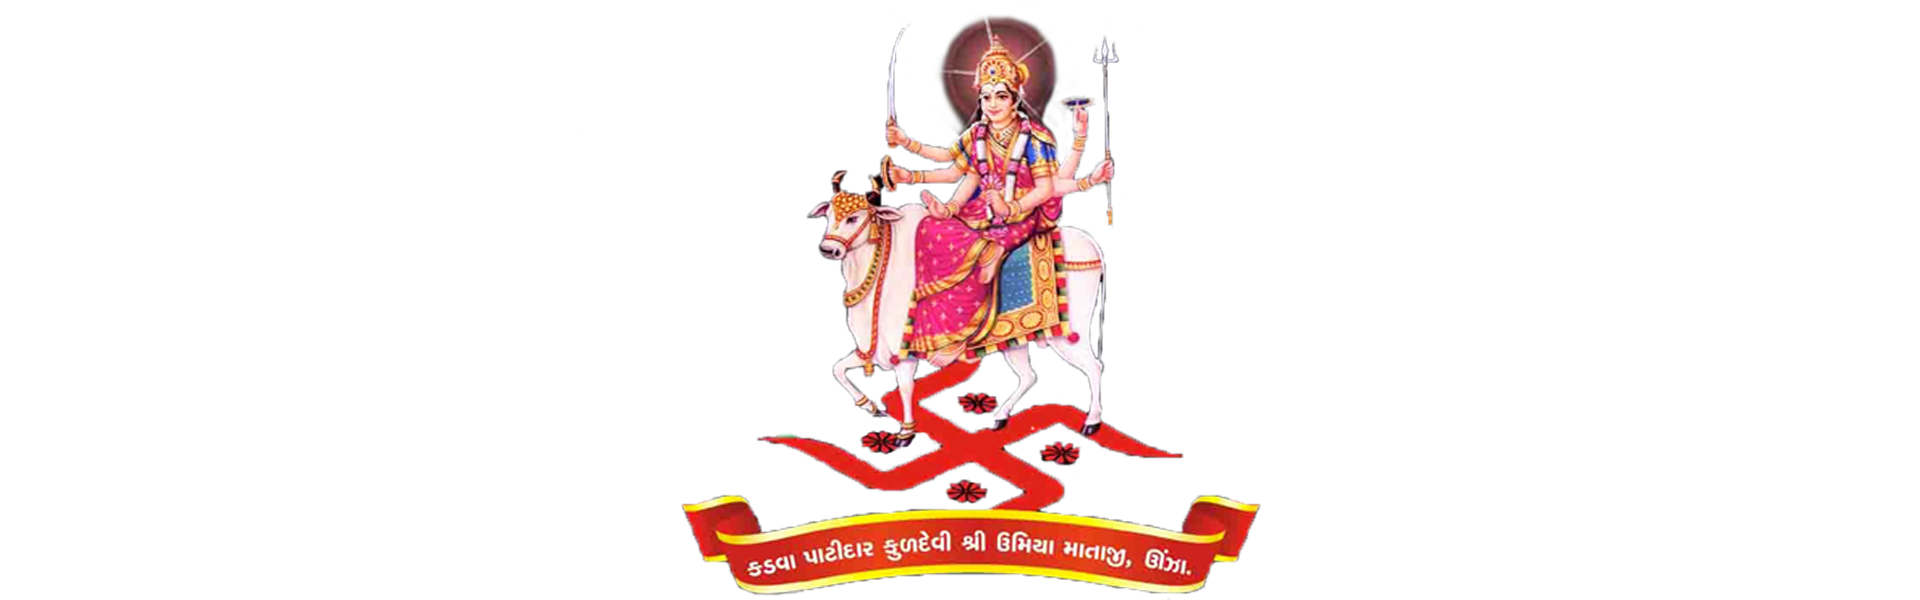 Mata Ji Png images collection for free download.